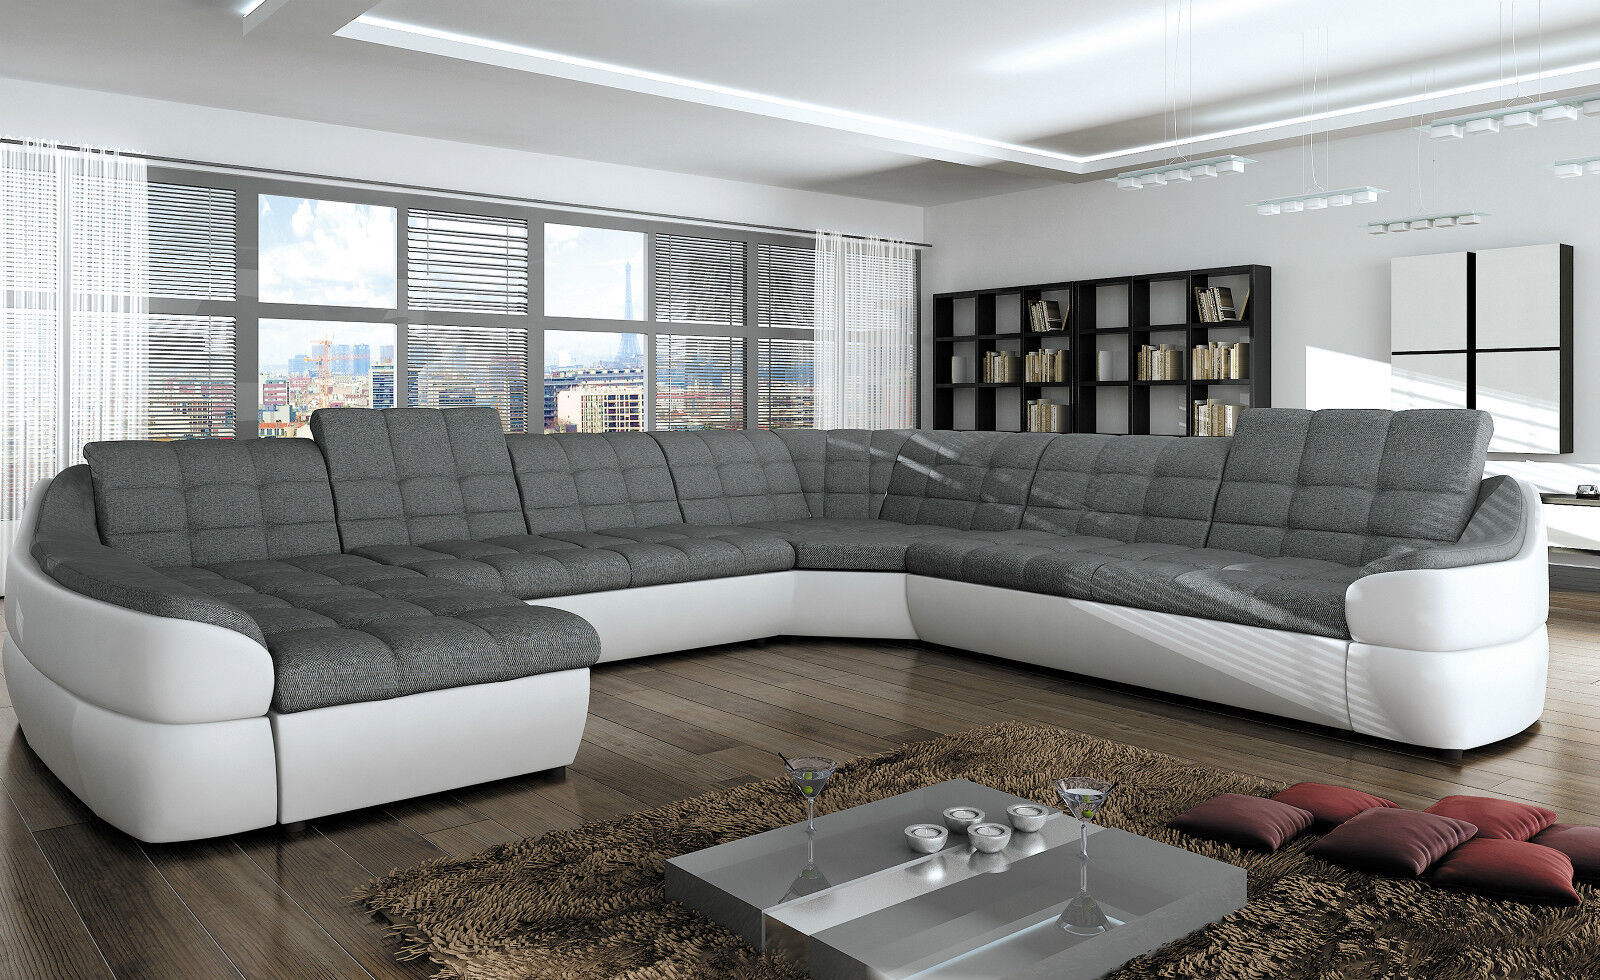 Sofa Mit Relaxfunktion Couchgarnitur Infinity Xl U Sofa Mit Relaxfunktion Couch Polsterecke Ecksofa